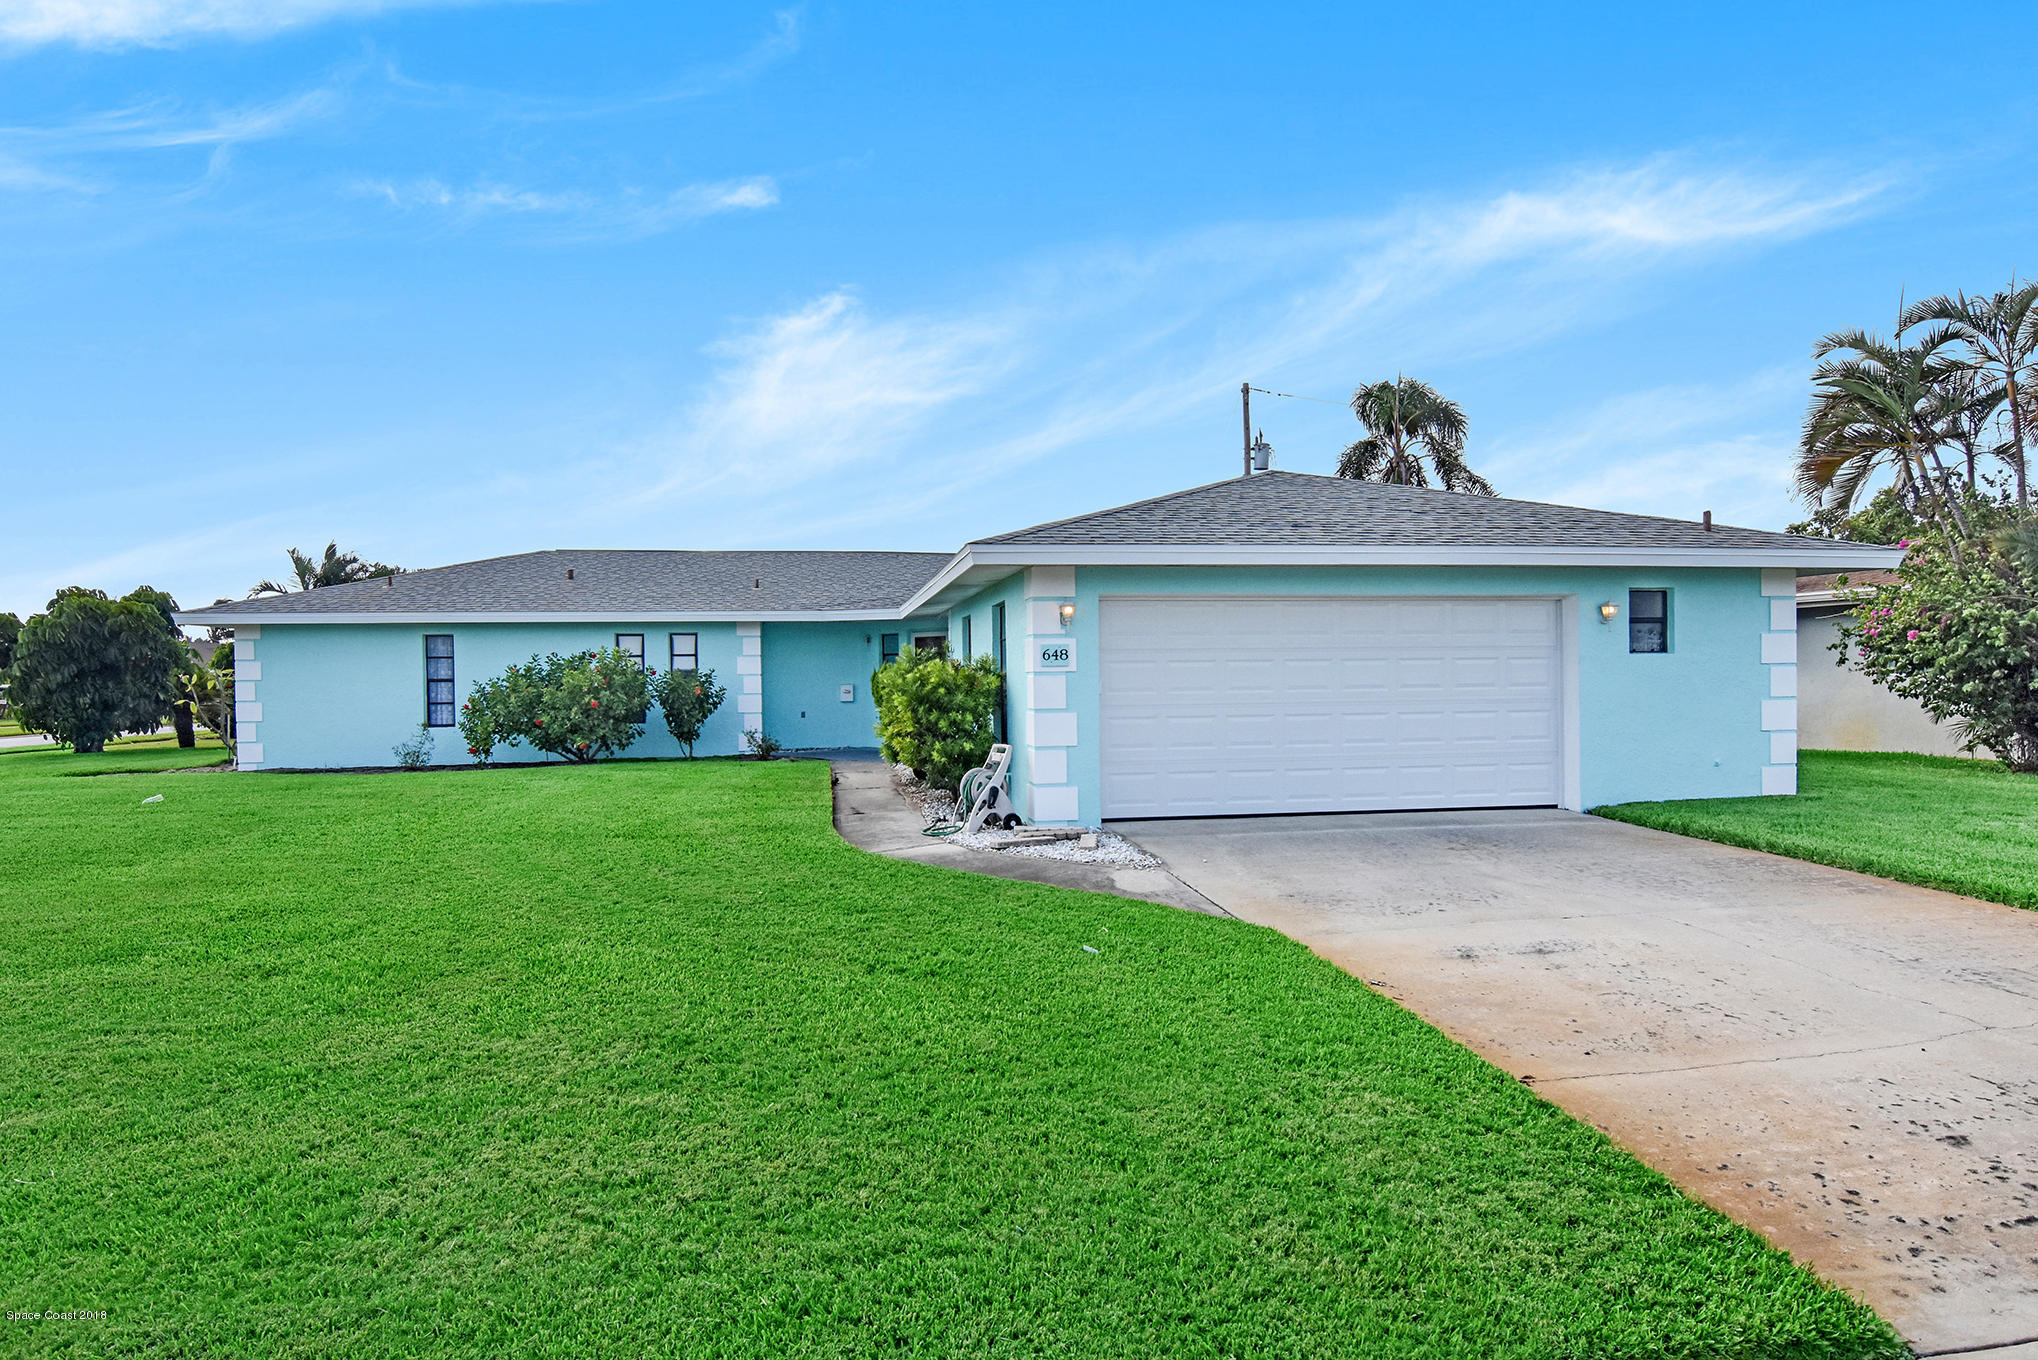 Single Family Home for Sale at 648 Hibiscus 648 Hibiscus Satellite Beach, Florida 32937 United States